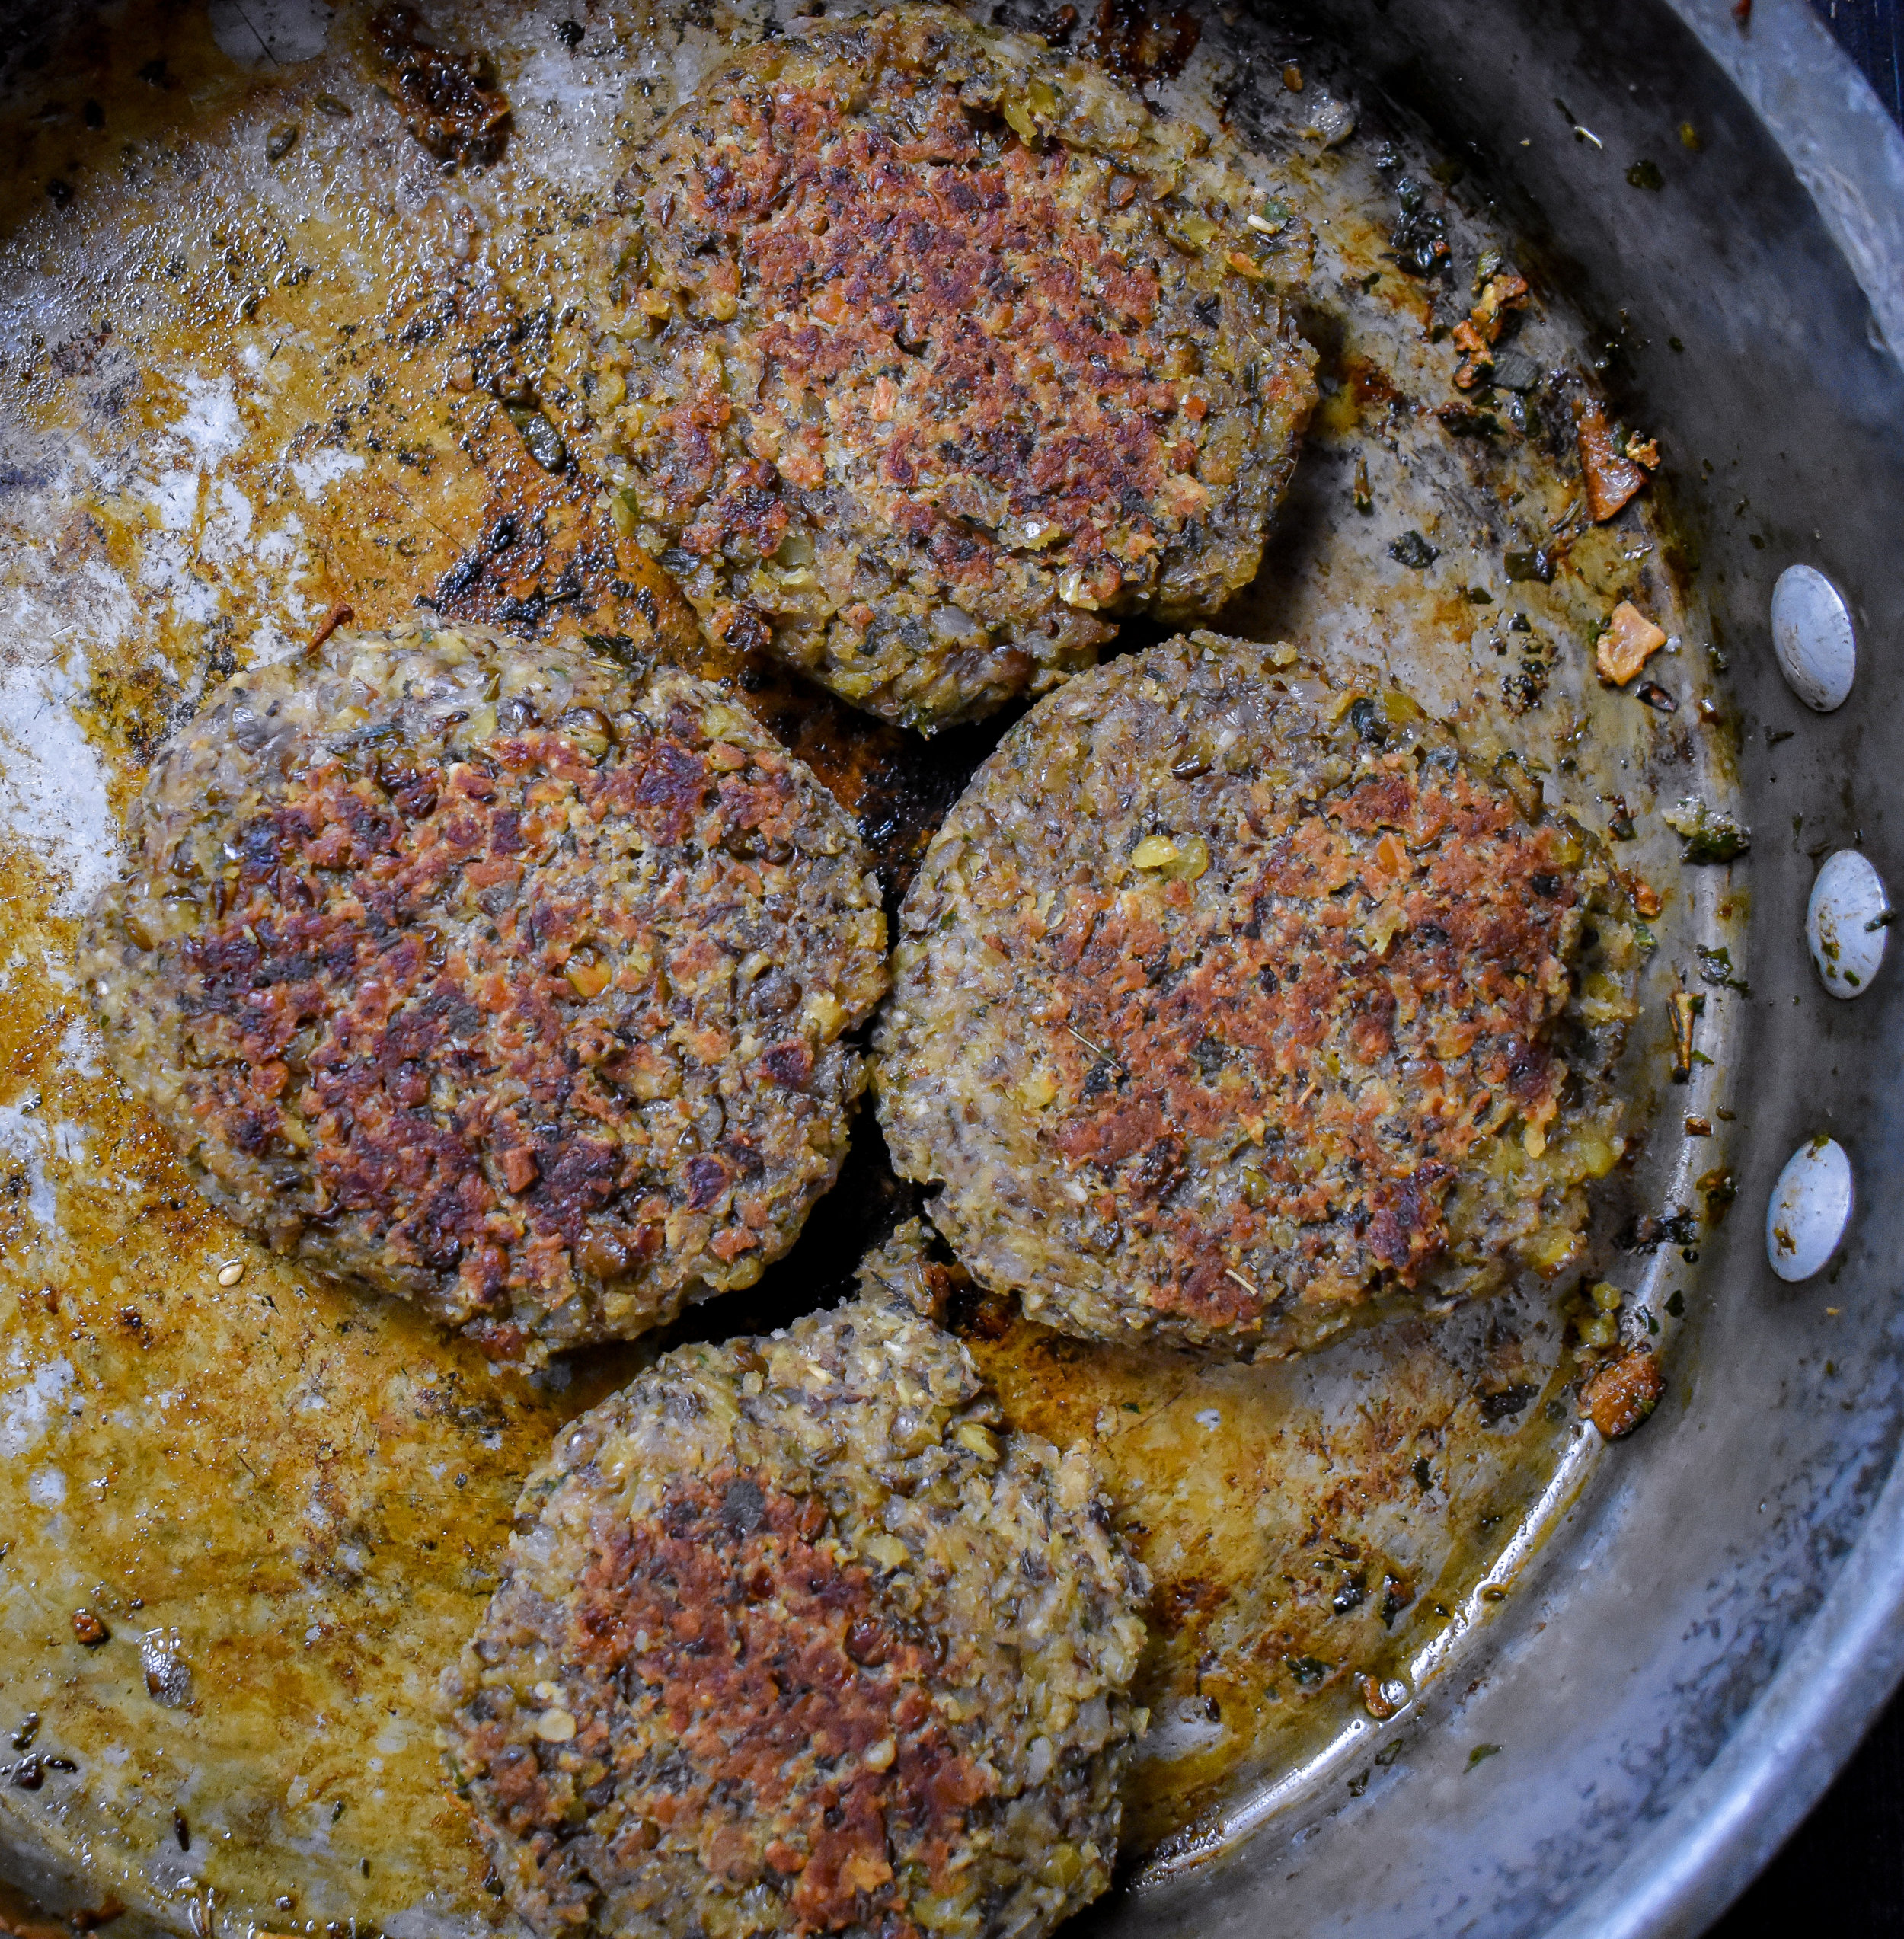 4. Next, form the mixture into 4 large sausage patties with your hands. If its feels very sticky, add some oat flour, cornstarch, or other flour. You should have a bit of residue on your hands but the patty should not be sticking to your hand. Add the patties back to the large frying pan with 1 tbl of olive oil. Cook over medium heat for ~4 minutes on each side until browned.